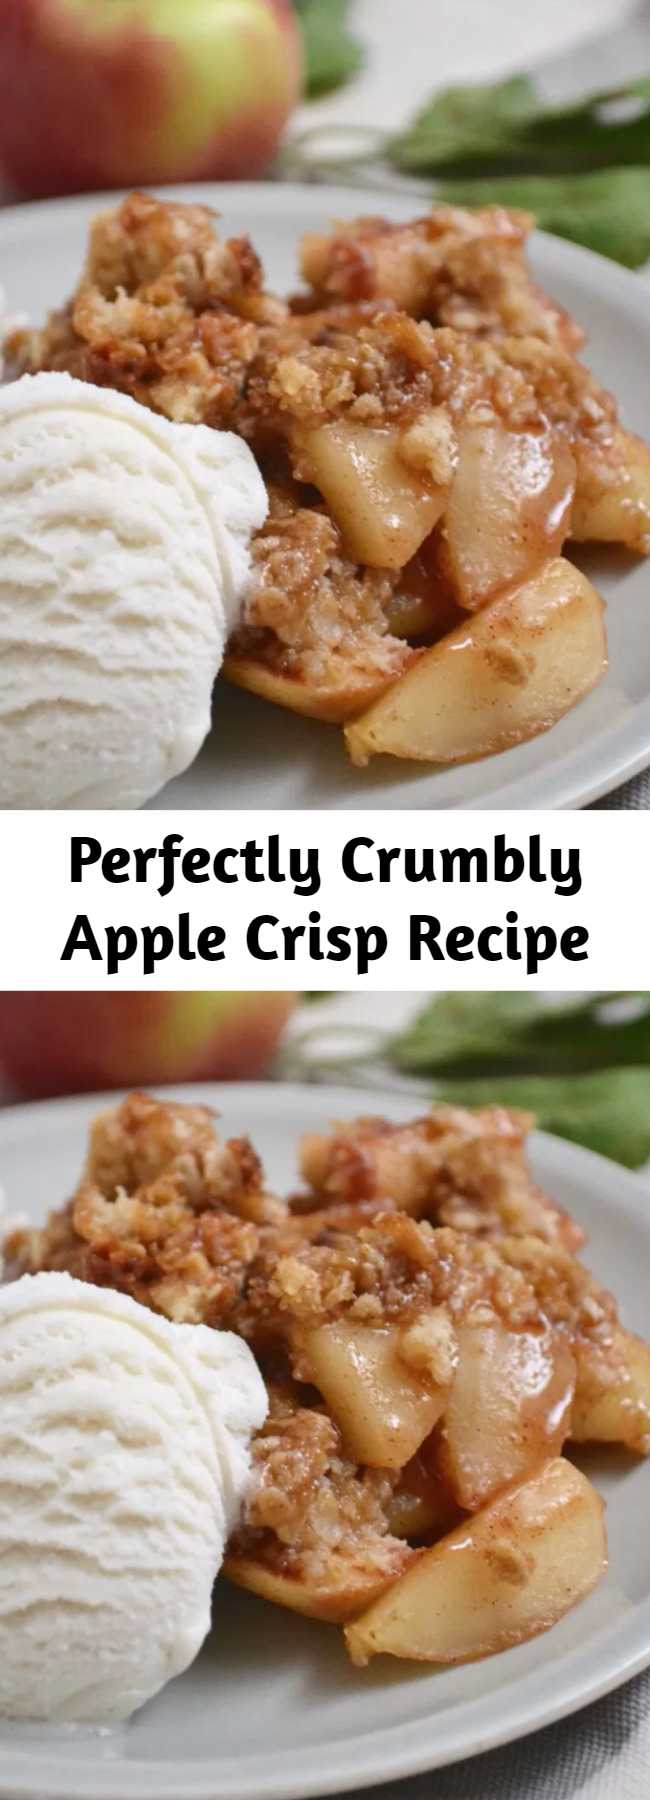 Perfectly Crumbly Apple Crisp Recipe - The topping on this apple crisp is packed with buttery, sugary, crumbly goodness. Apple crisp is the perfect fall dessert. Recipe includes modifications for different types of apples.